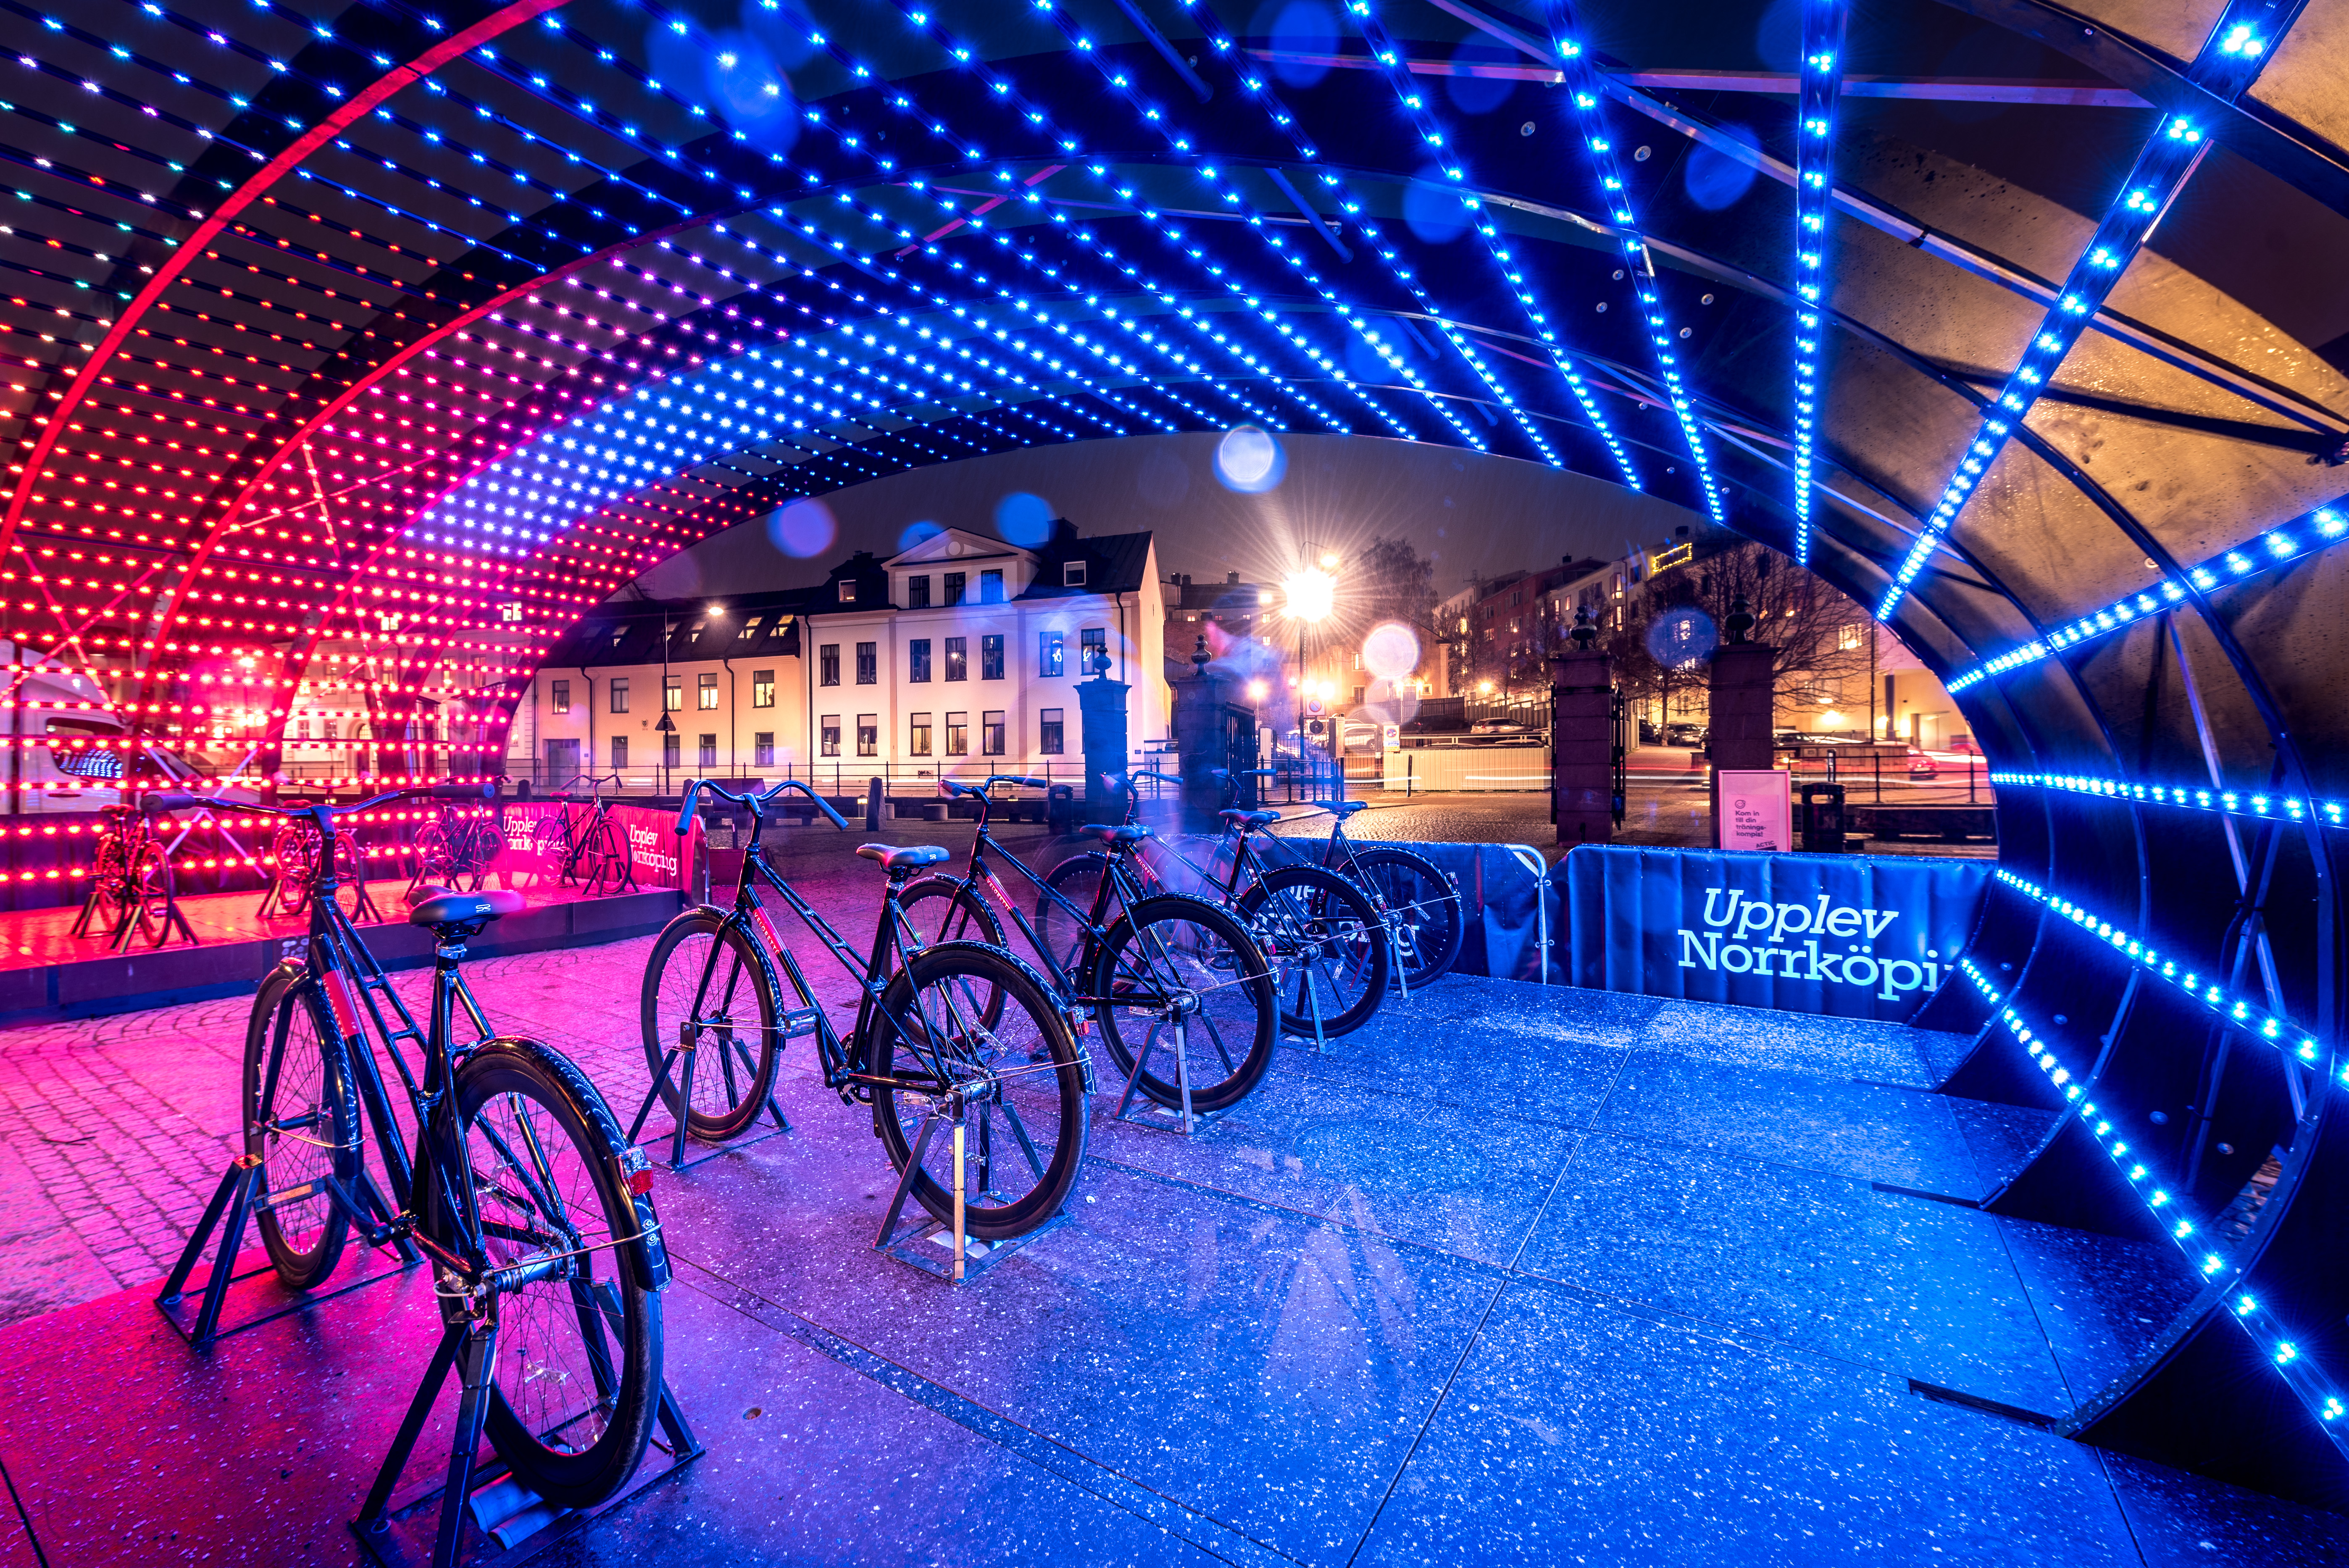 Contesters pushing pedals on the Lightbattle installation by VENIVIDIMULTIPLEX during Amsterdam Light Festival